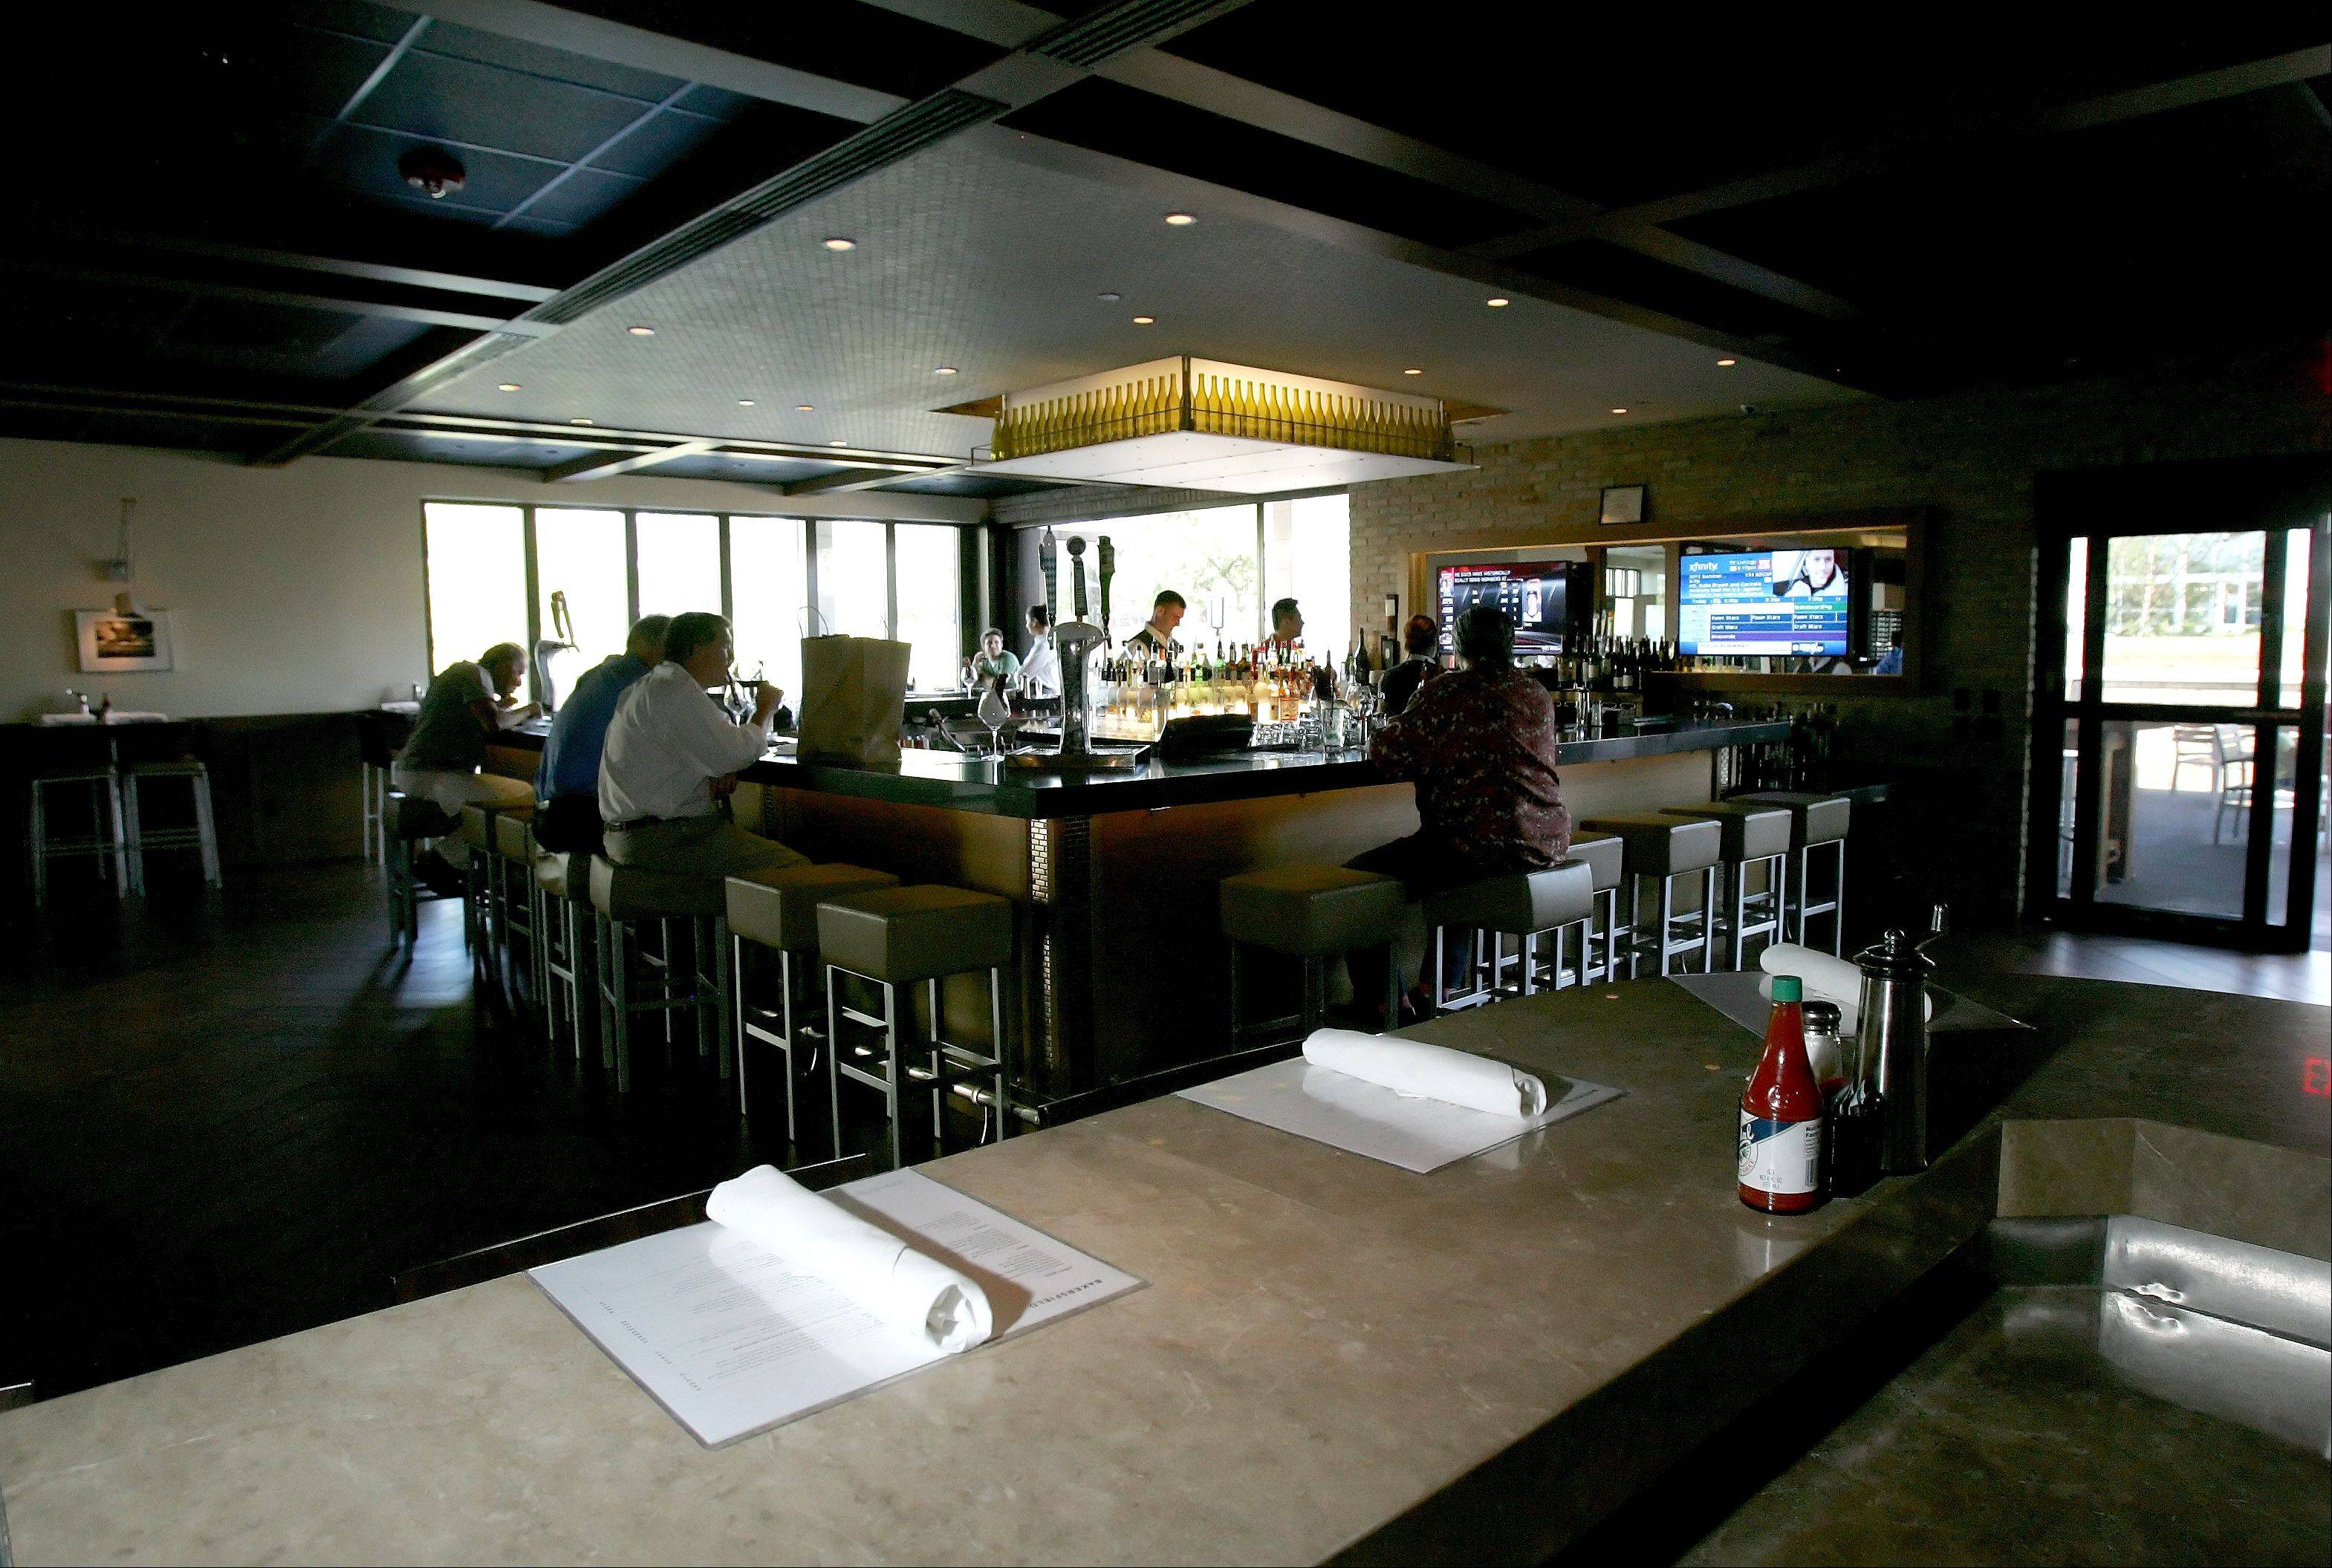 Bakersfield Restaurant offers a casual menu in a sophisticated space.